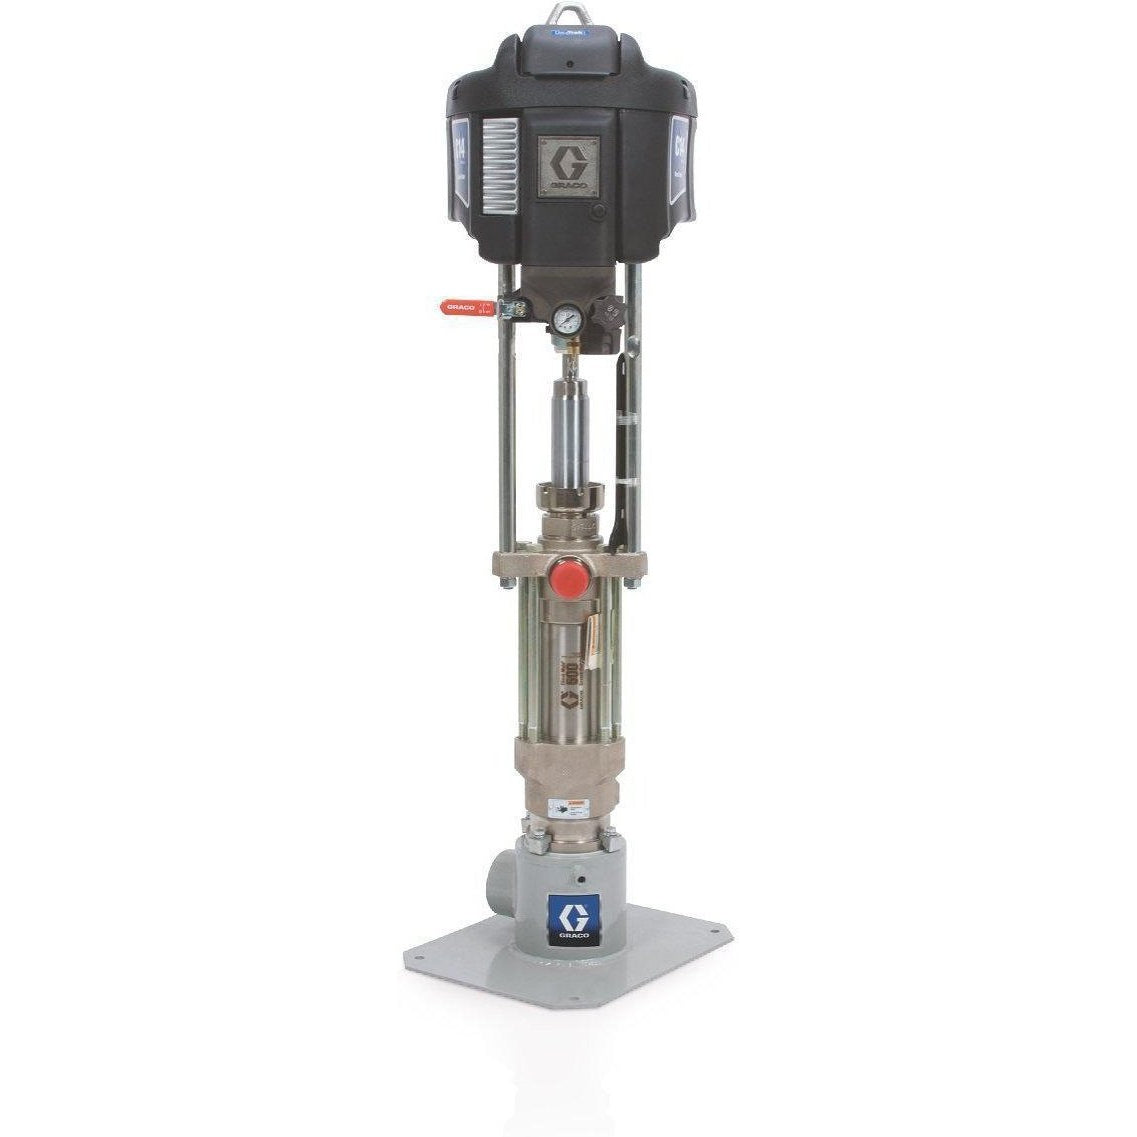 Graco 247975 Nxt™ Check-Mateâ® 63:1 Grease Pump Package With Datatrak - Floor Standing - Fireball Equipment Ltd.